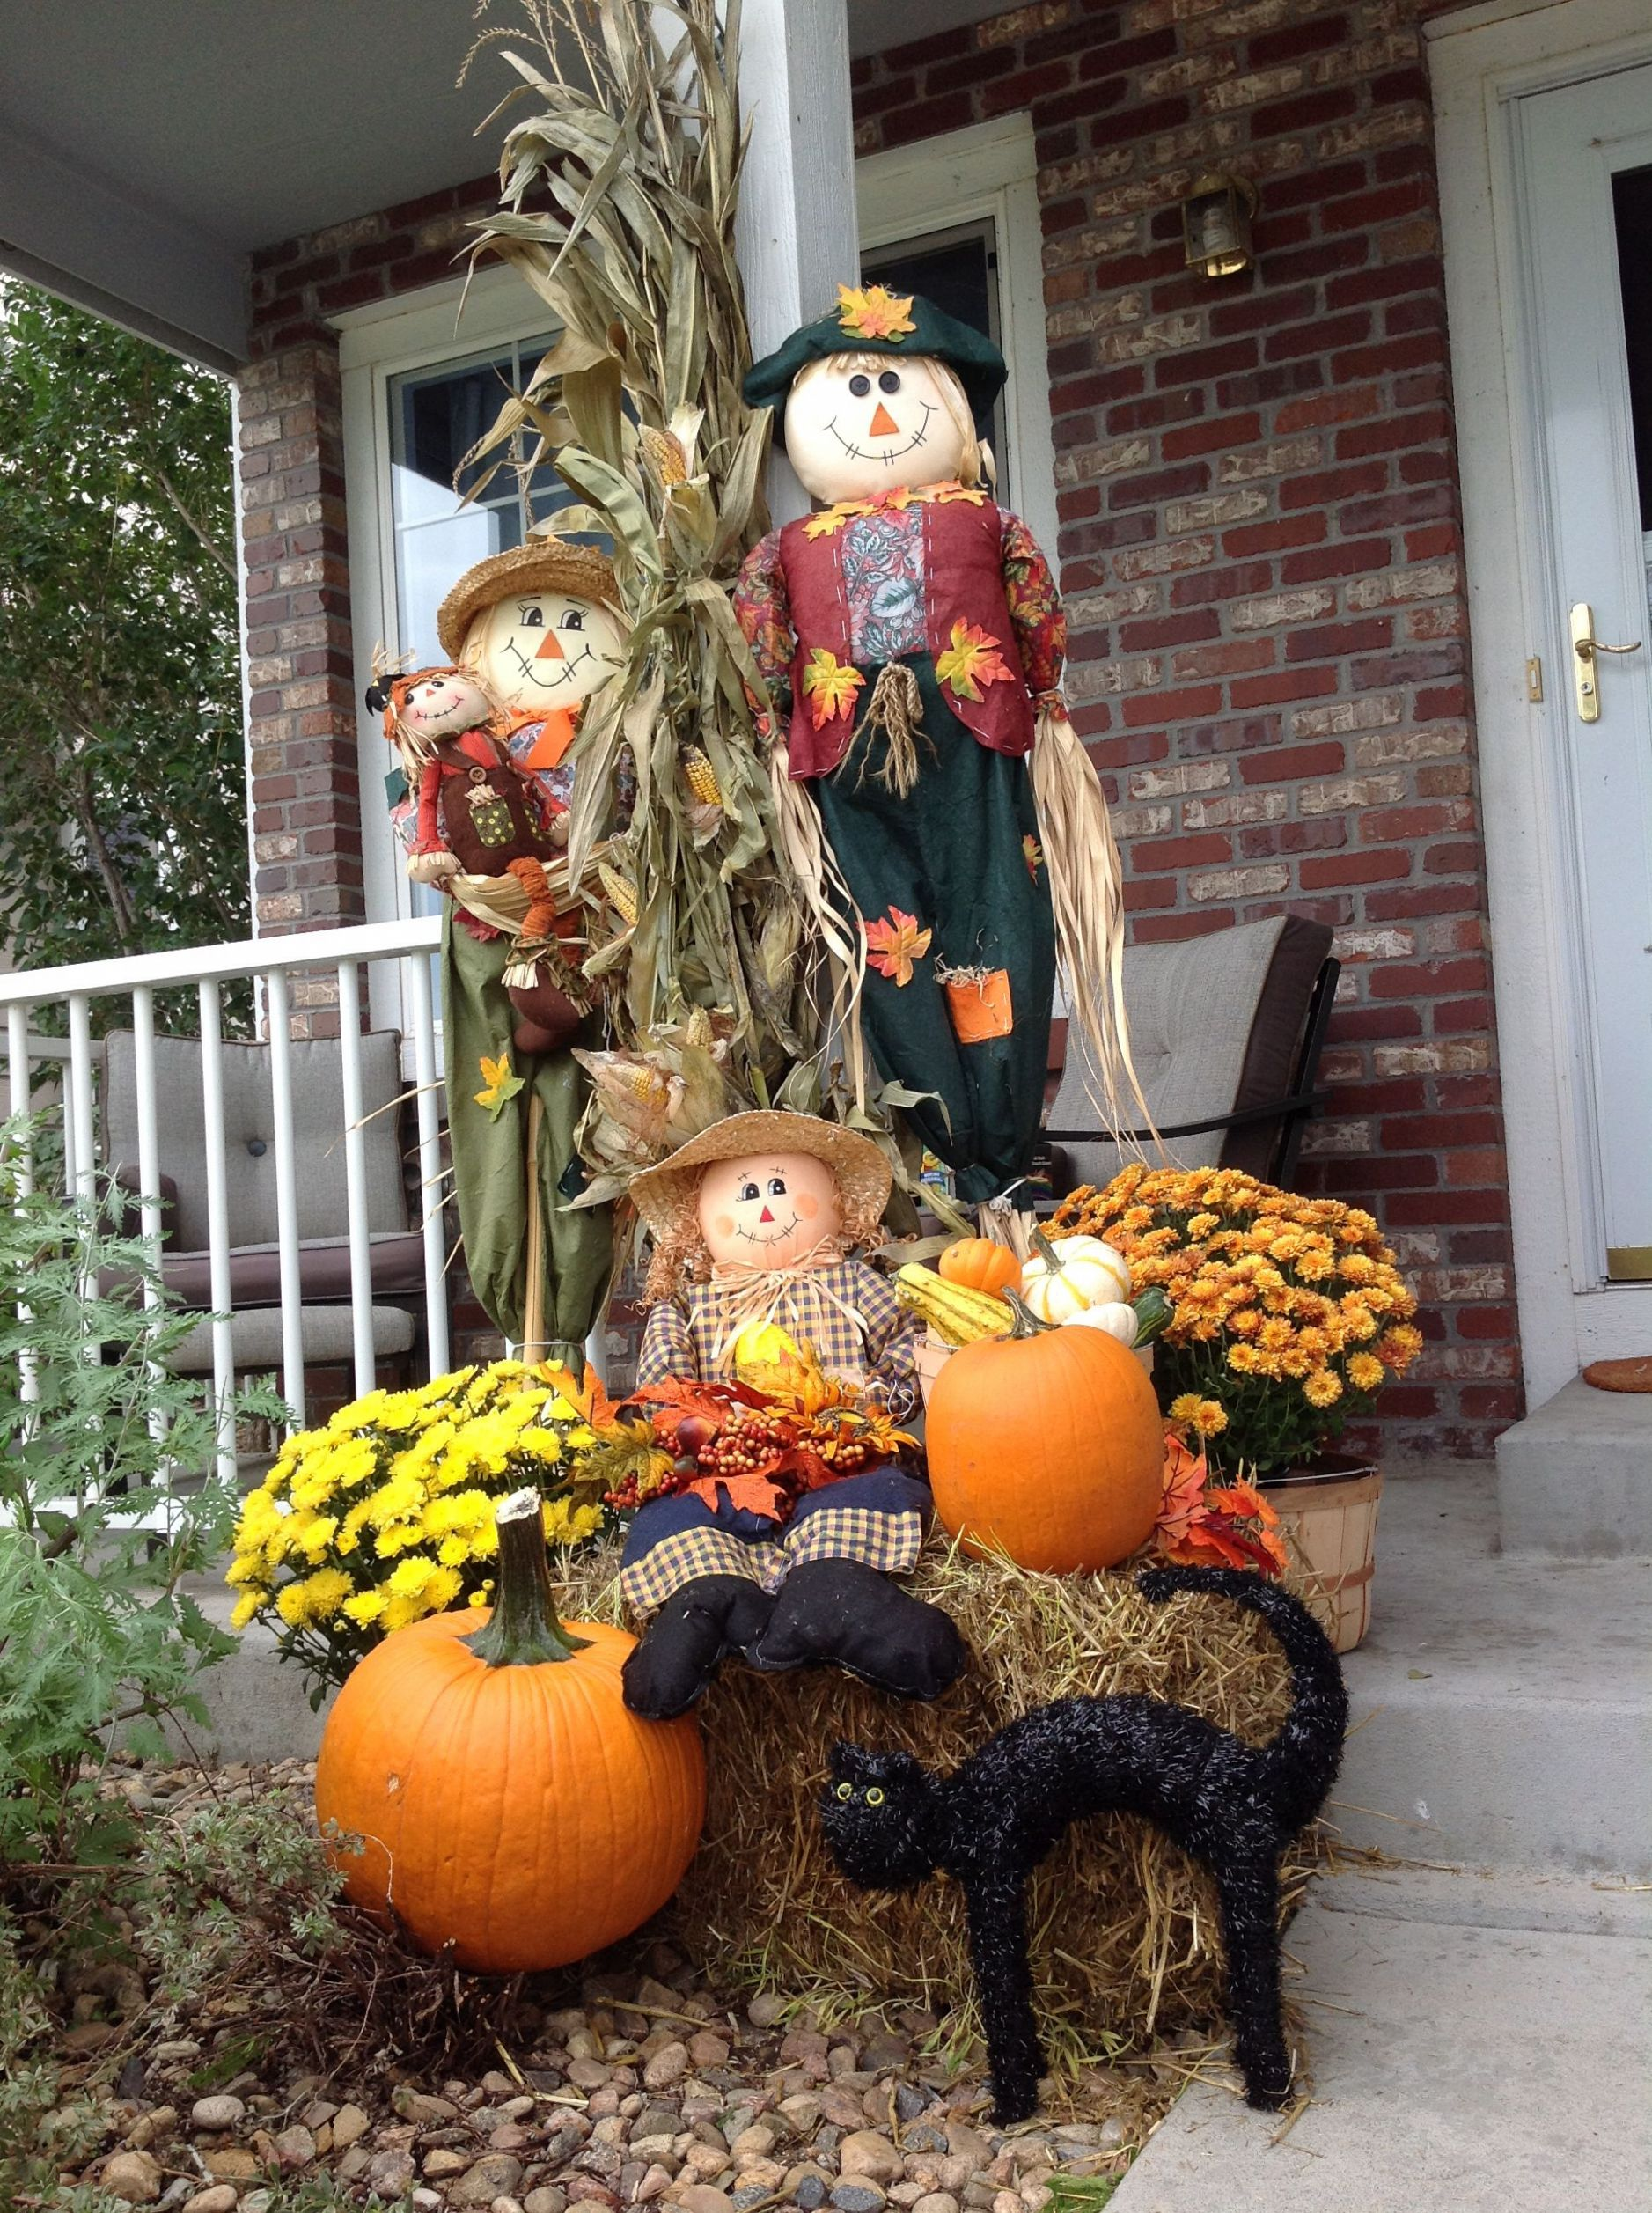 Decorating the porch for fall. | Fall decorations porch, Fall yard ..